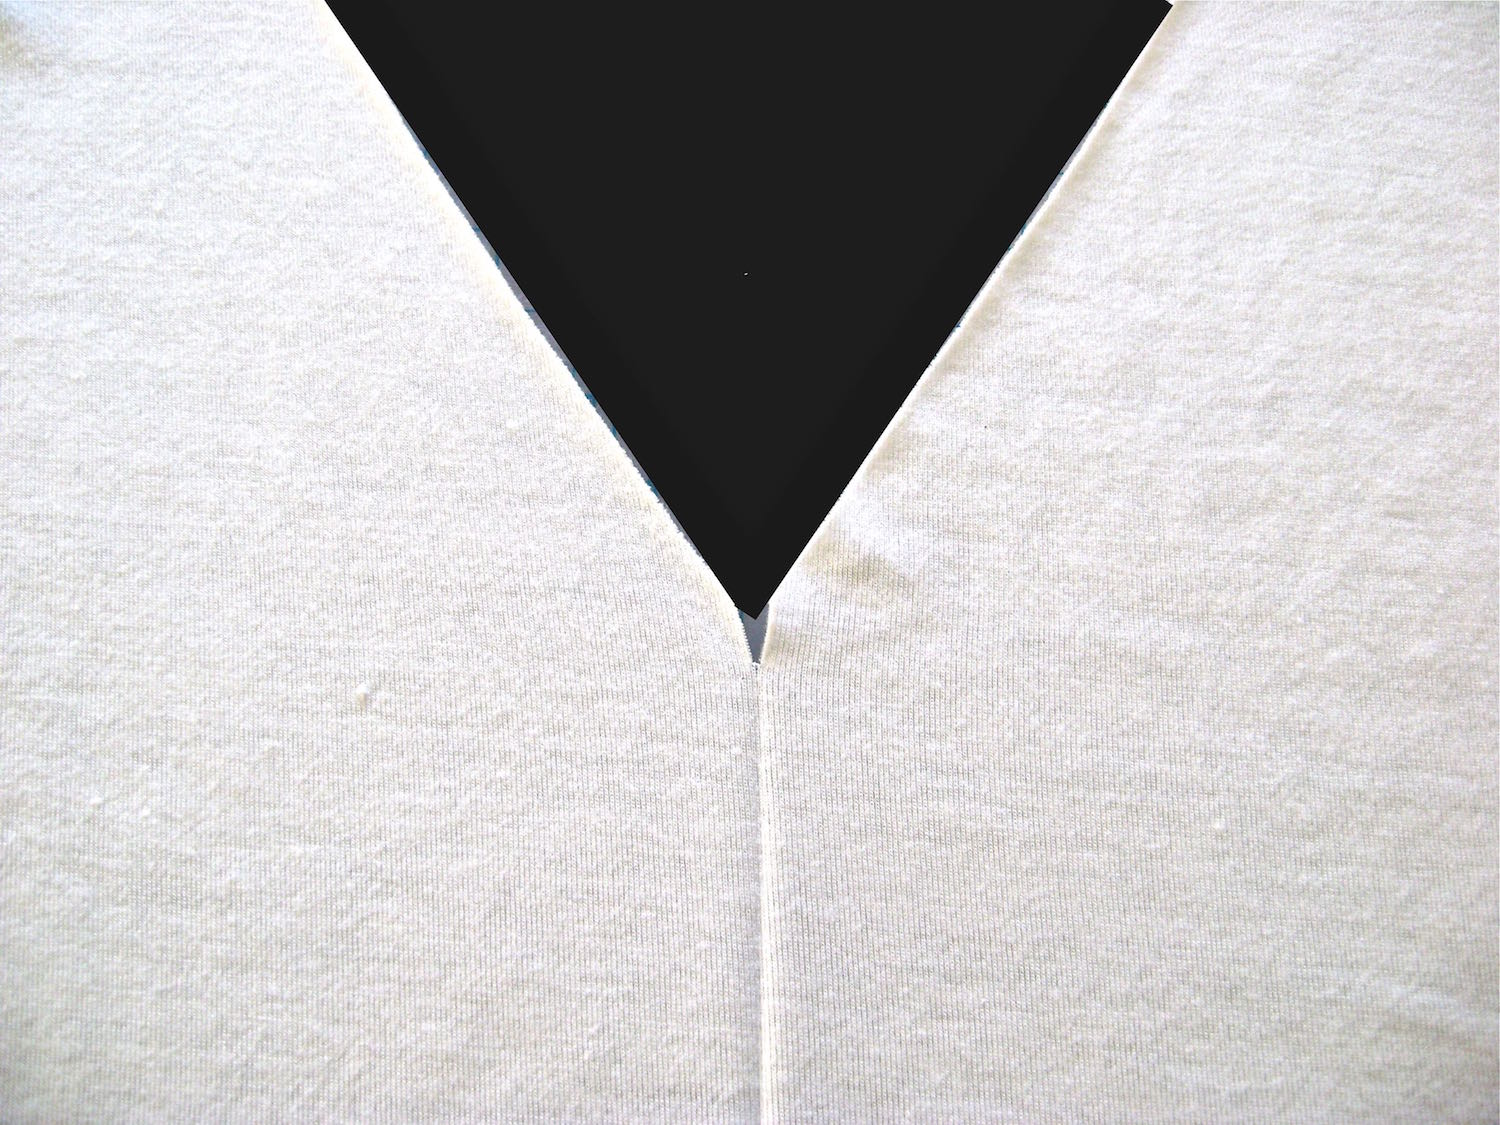 """step 1 - Fold the shirt front in the center and press in a soft crease extending about 4 inches down from the point of the """"V"""". Snip a ½"""" opening in the point of the """"V""""."""